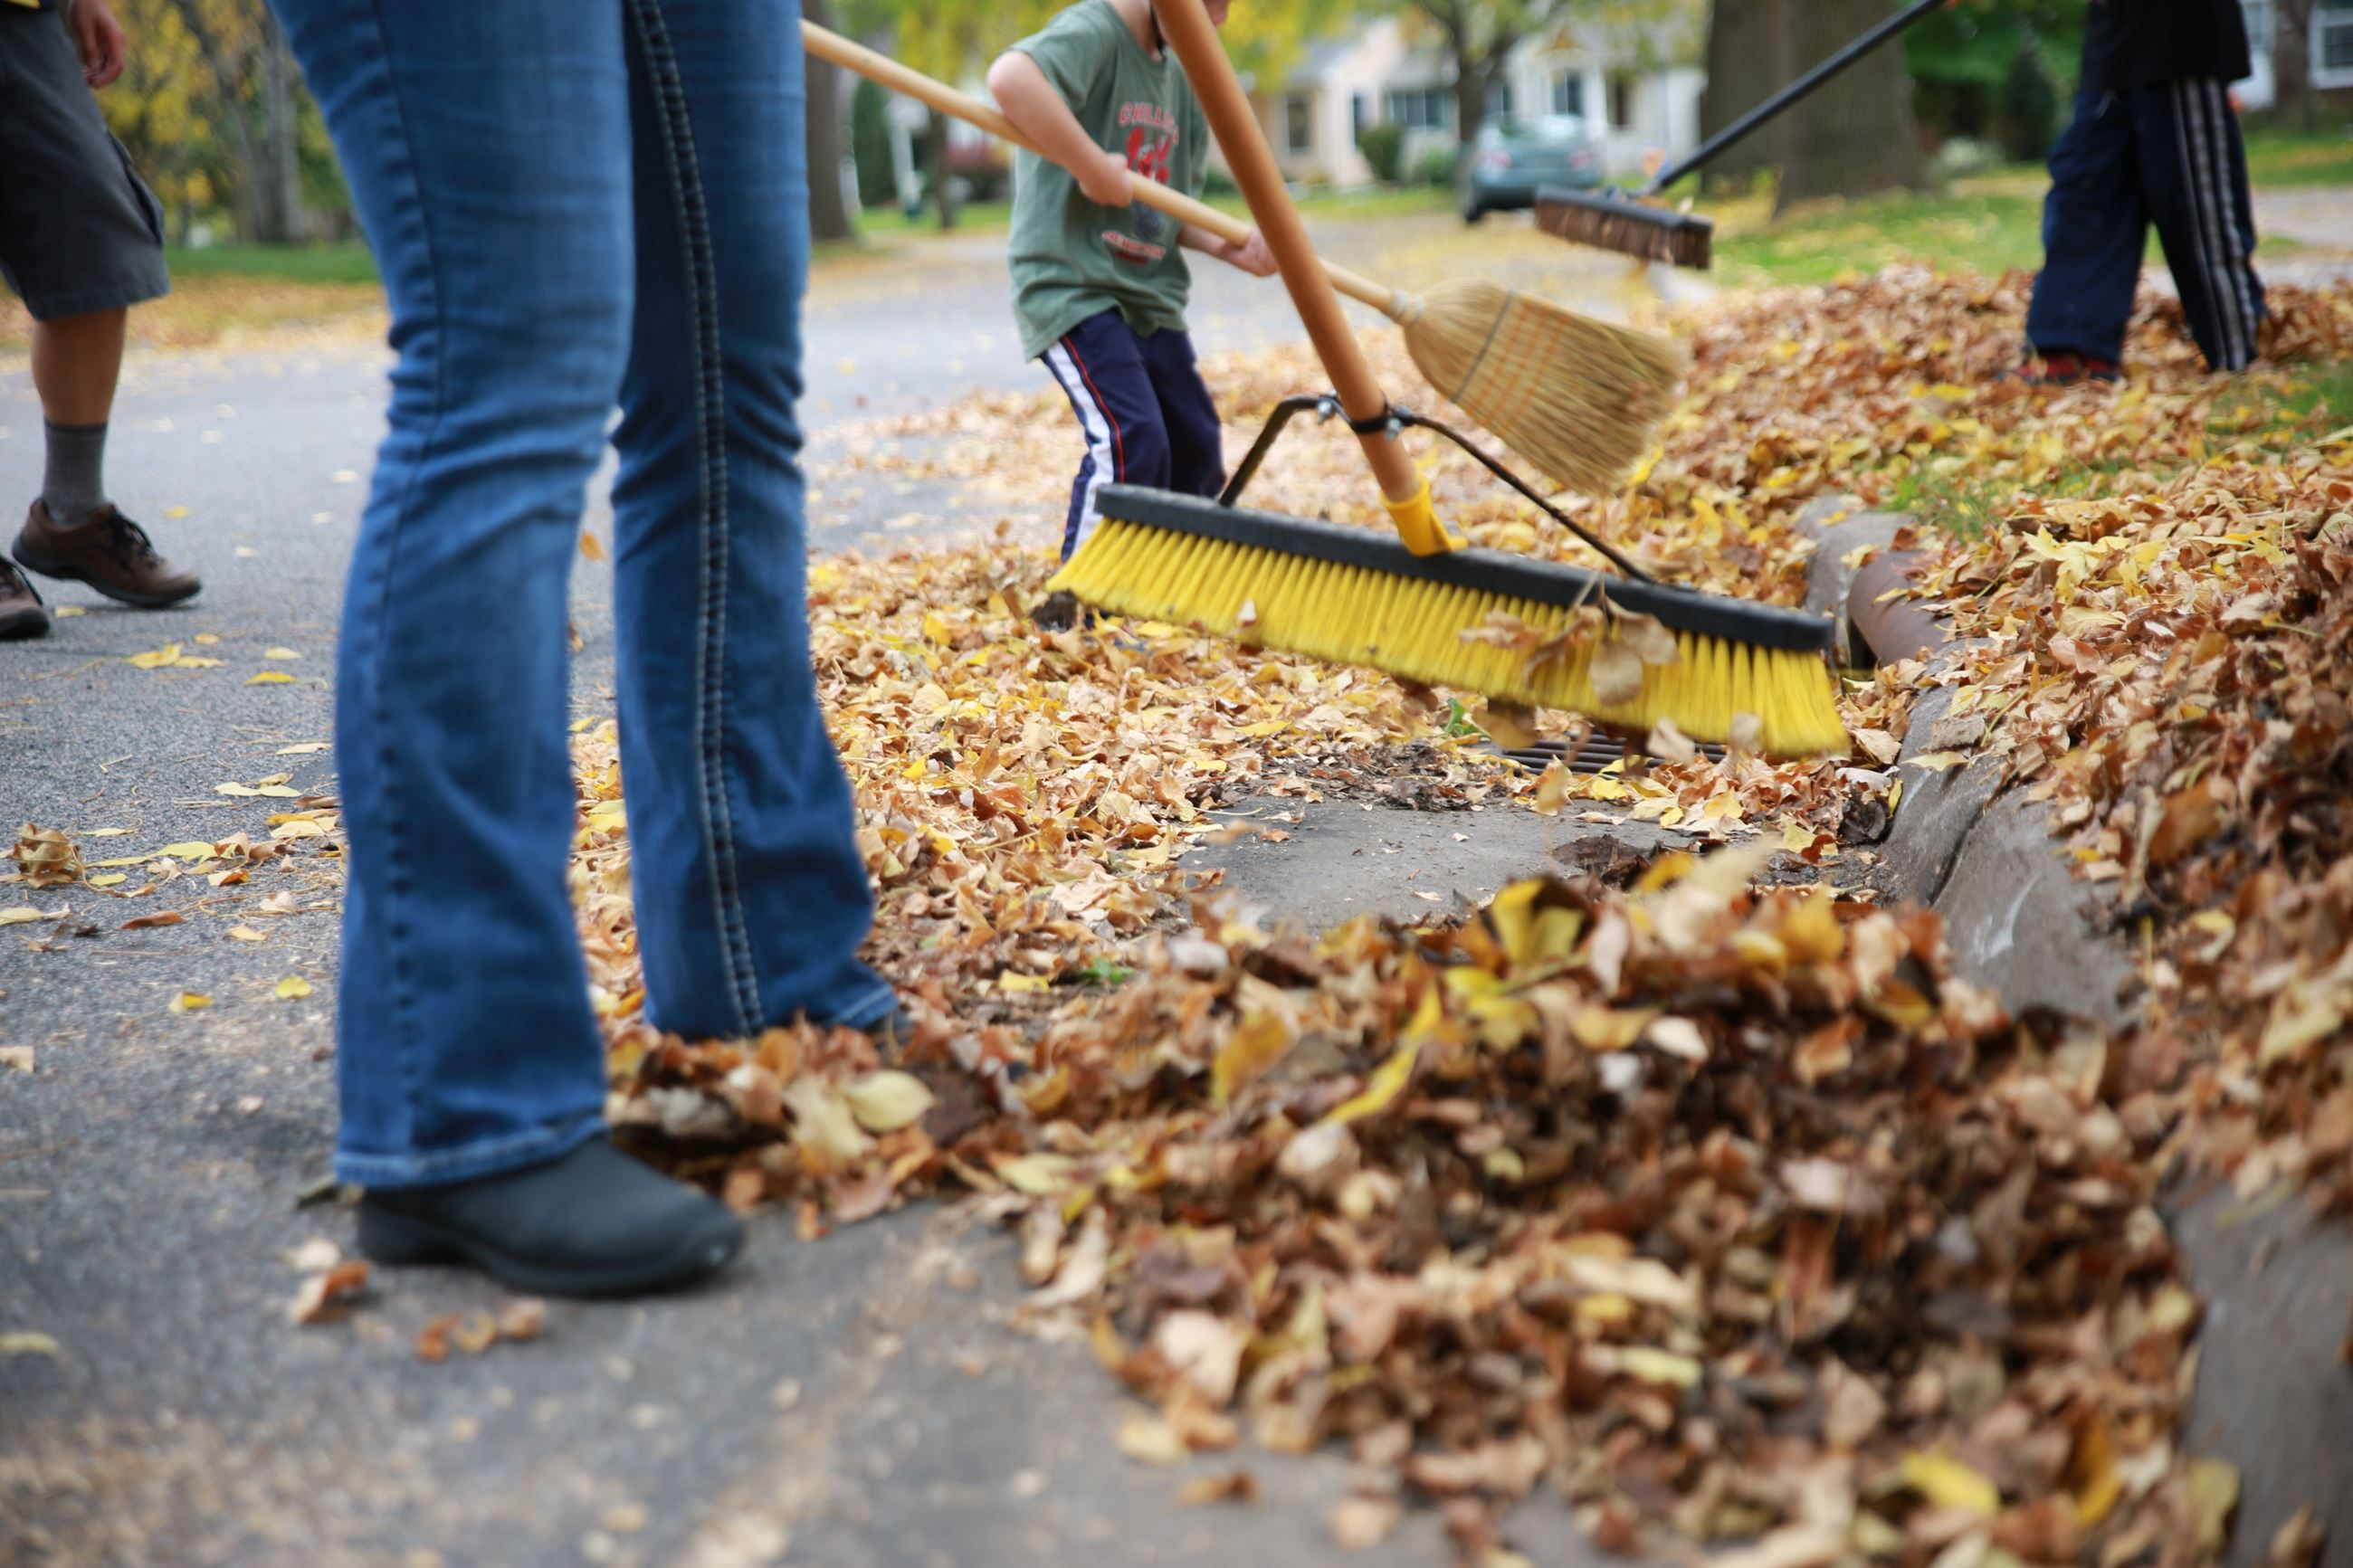 Lawn Care - Sweeping leaves from gutters